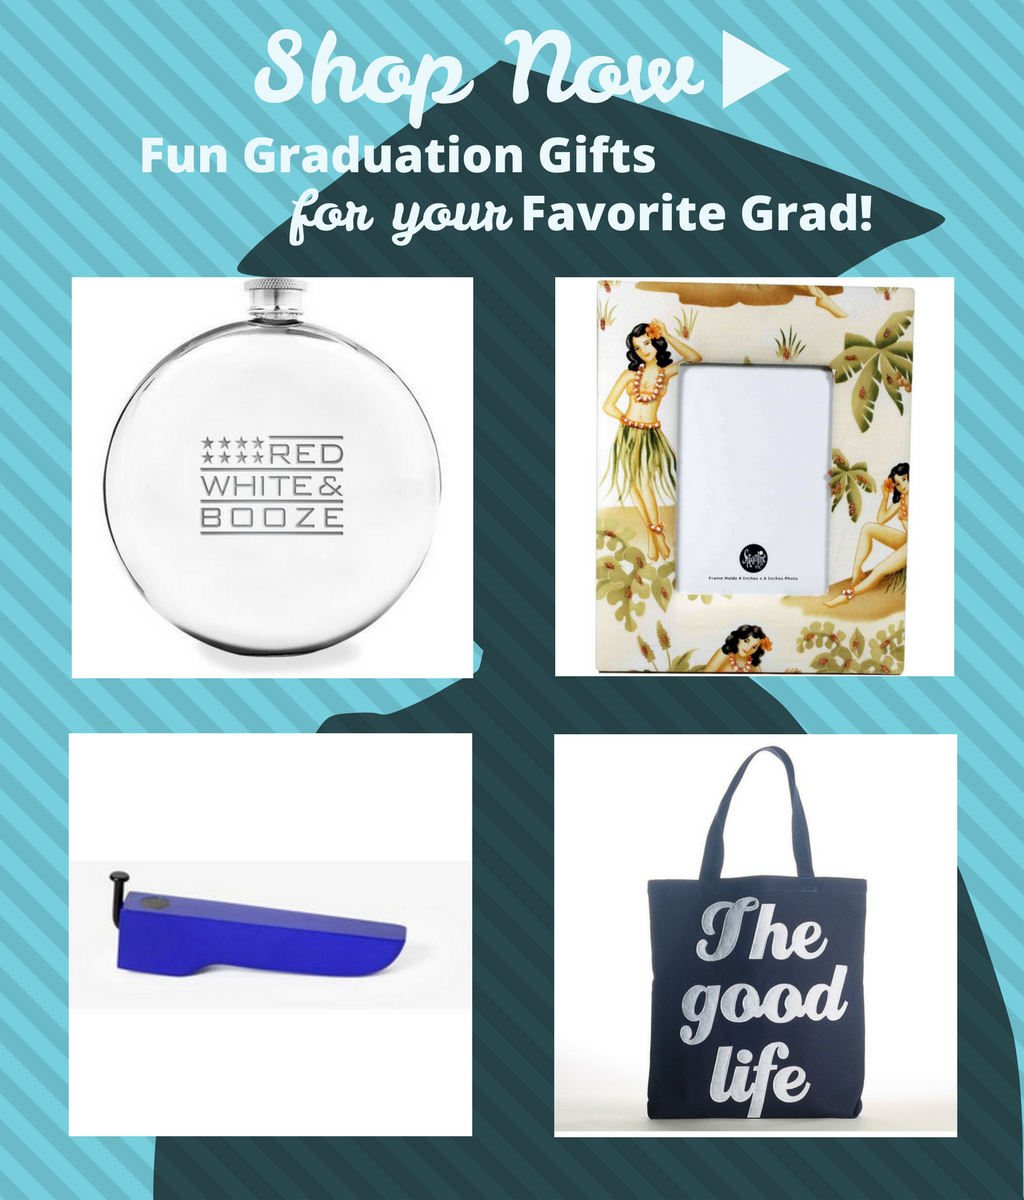 Shop Now for Fun Graduation Gifts